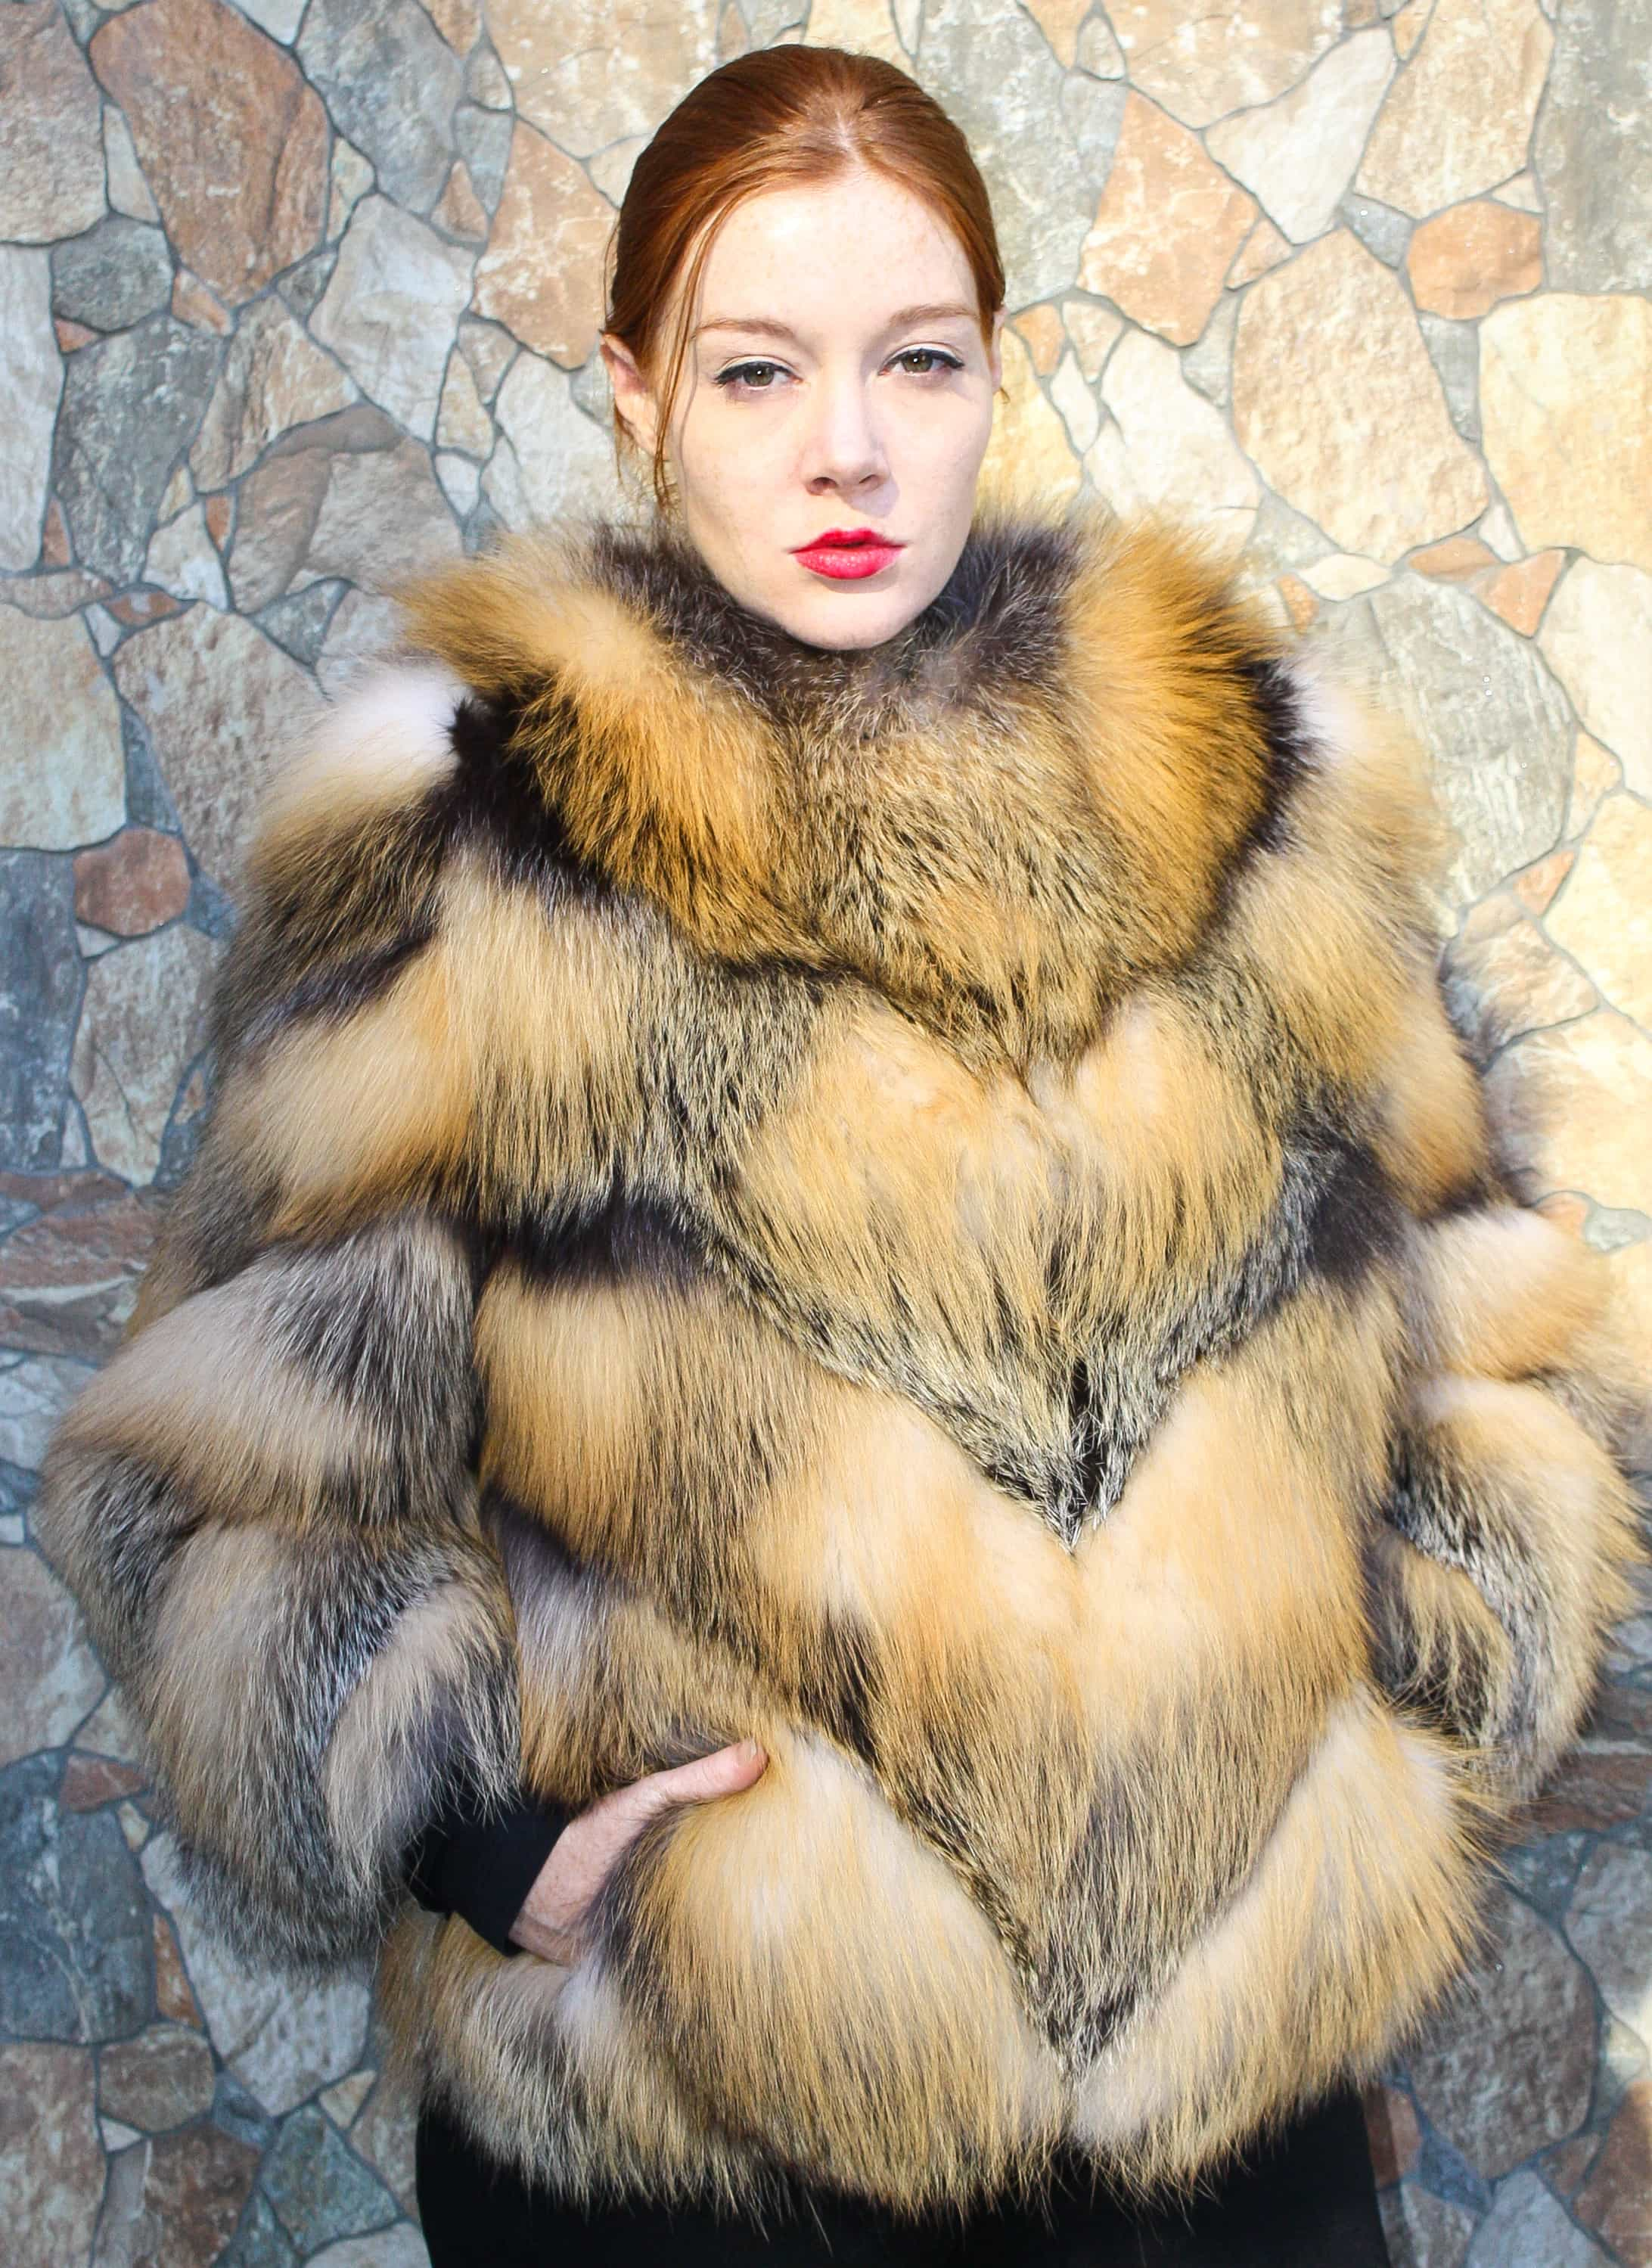 Animal Fur Coats: Much Warmer than Synthetic Fibers | MARC KAUFMAN